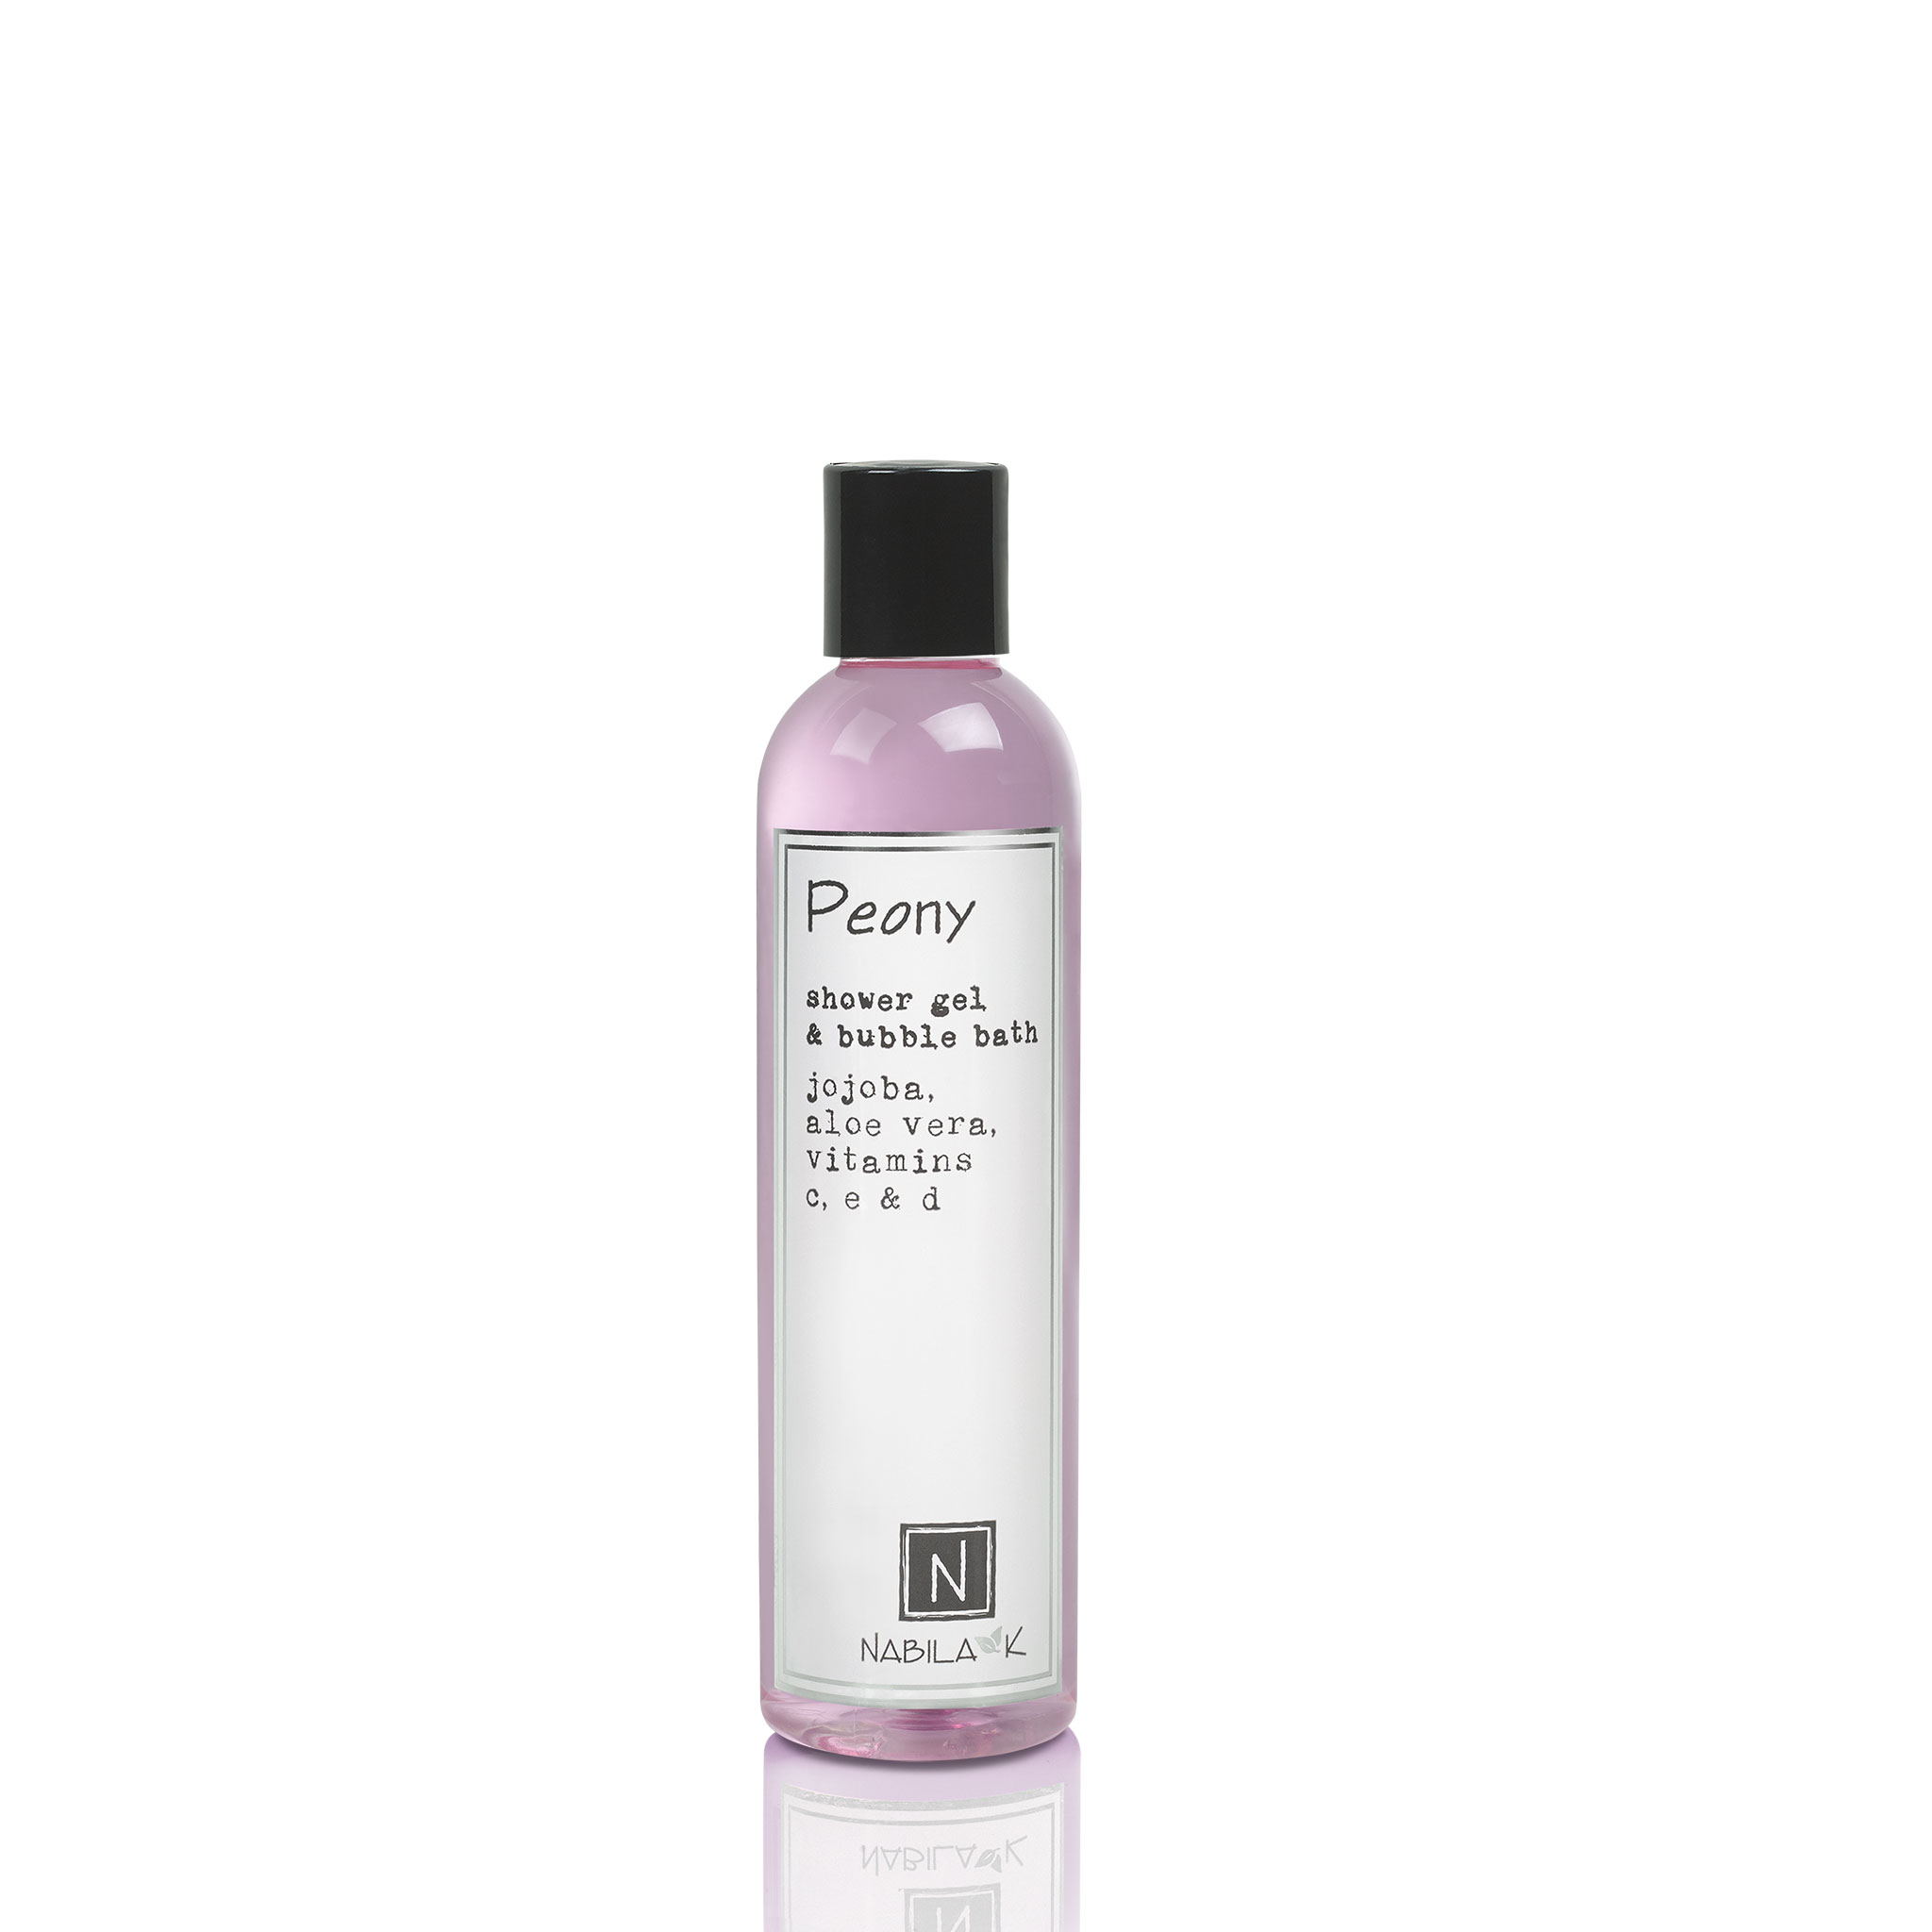 One Large Size Version of Nabila K's Peony Shower Gel and Bubble Bath Jojoba, Aloe Vera, Vitamins C, E, & D